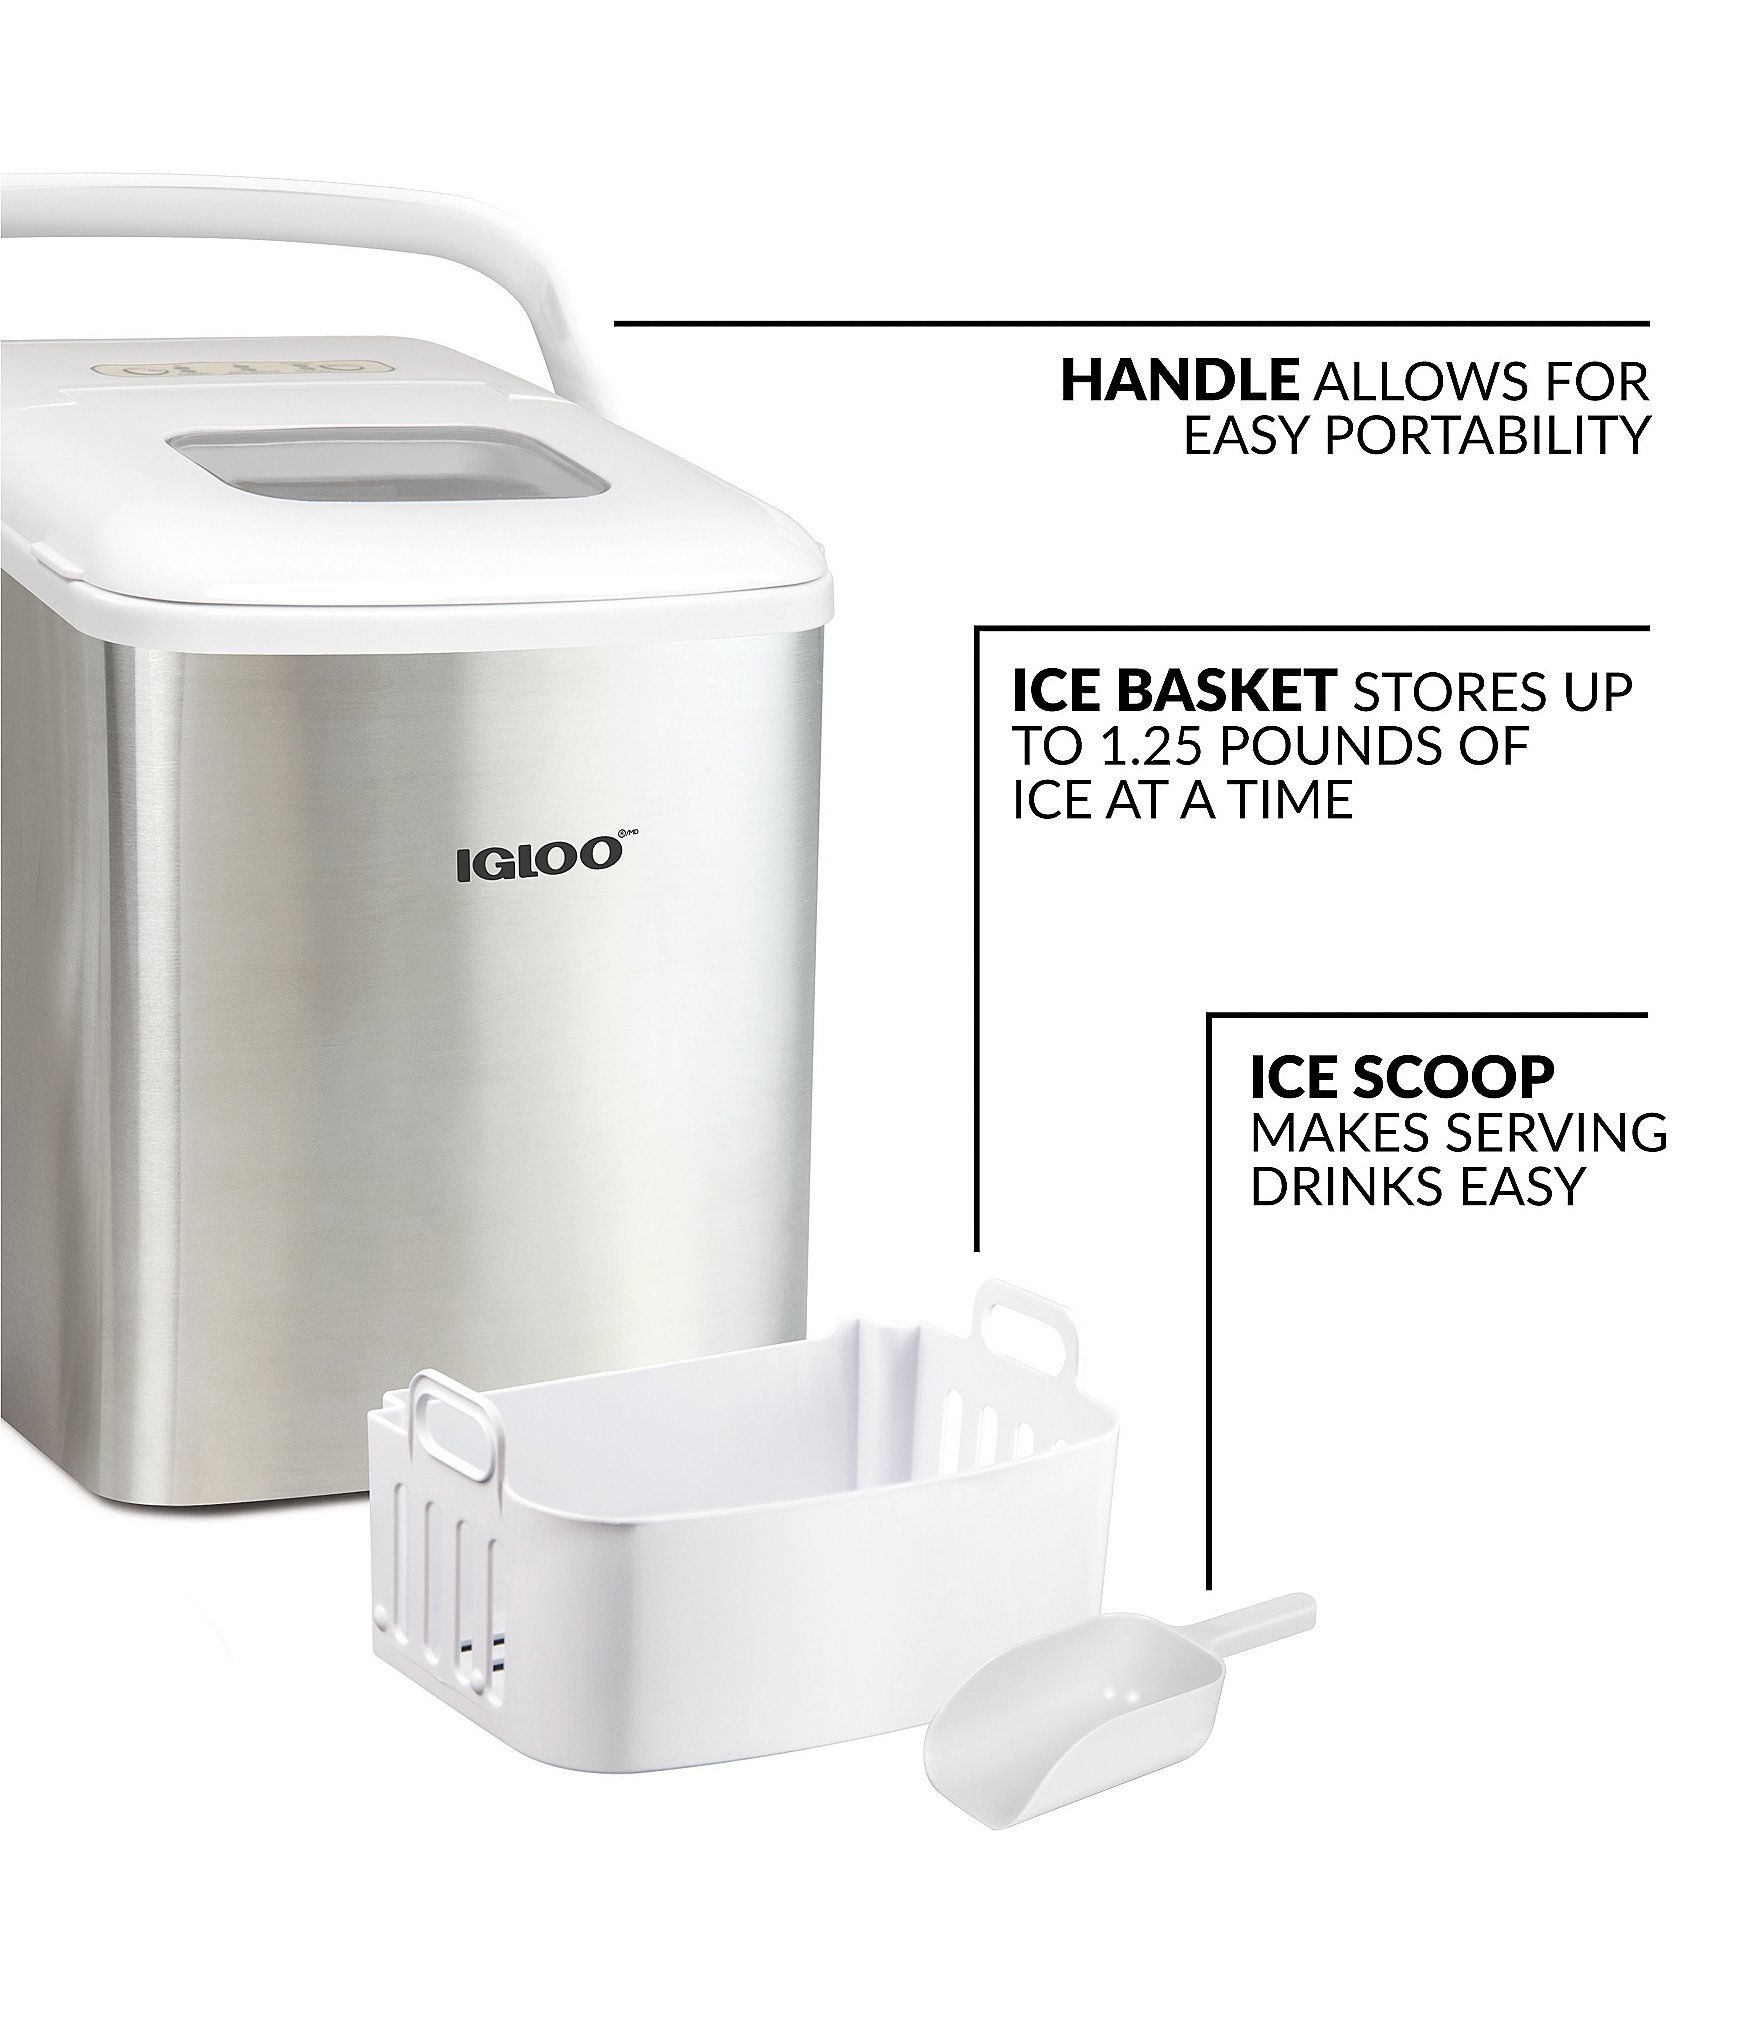 Igloo Automatic Self Cleaning Portable Electric Countertop Ice Maker Machine Stainless Steel Dillard S